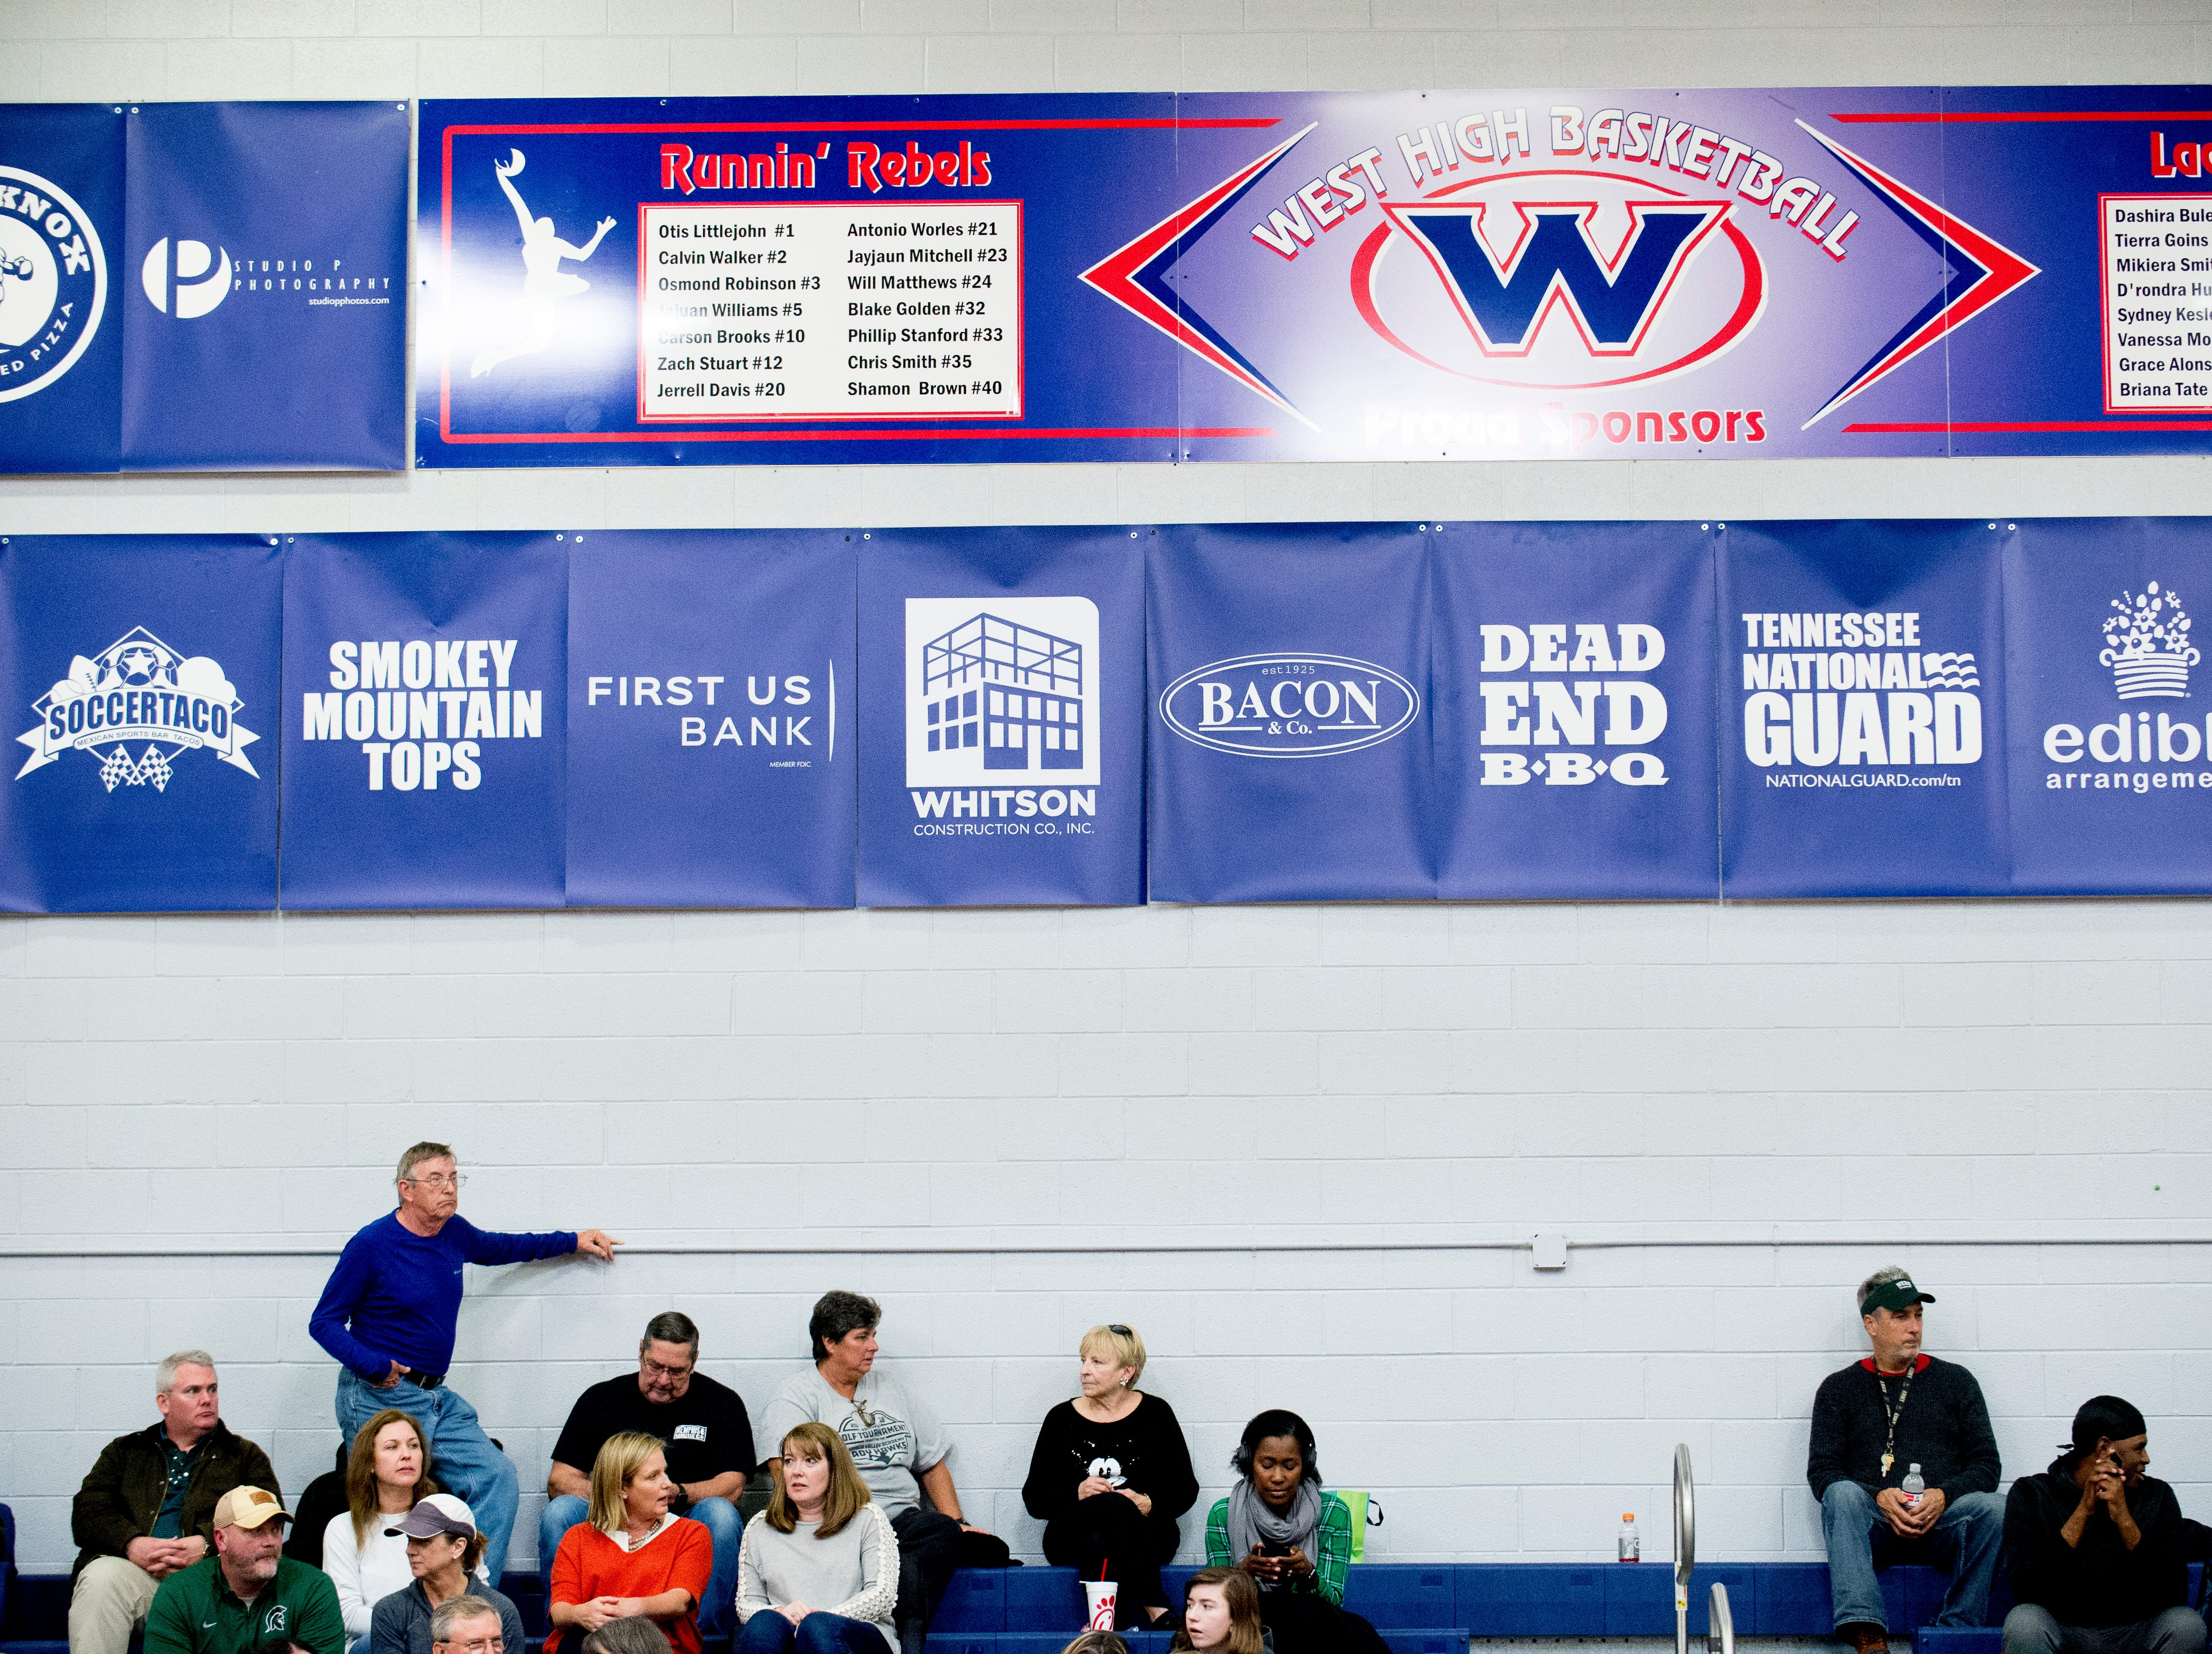 Fans watch the game from the bleachers during a game between West and Webb at West High School in Knoxville, Tennessee on Friday, January 4, 2019.